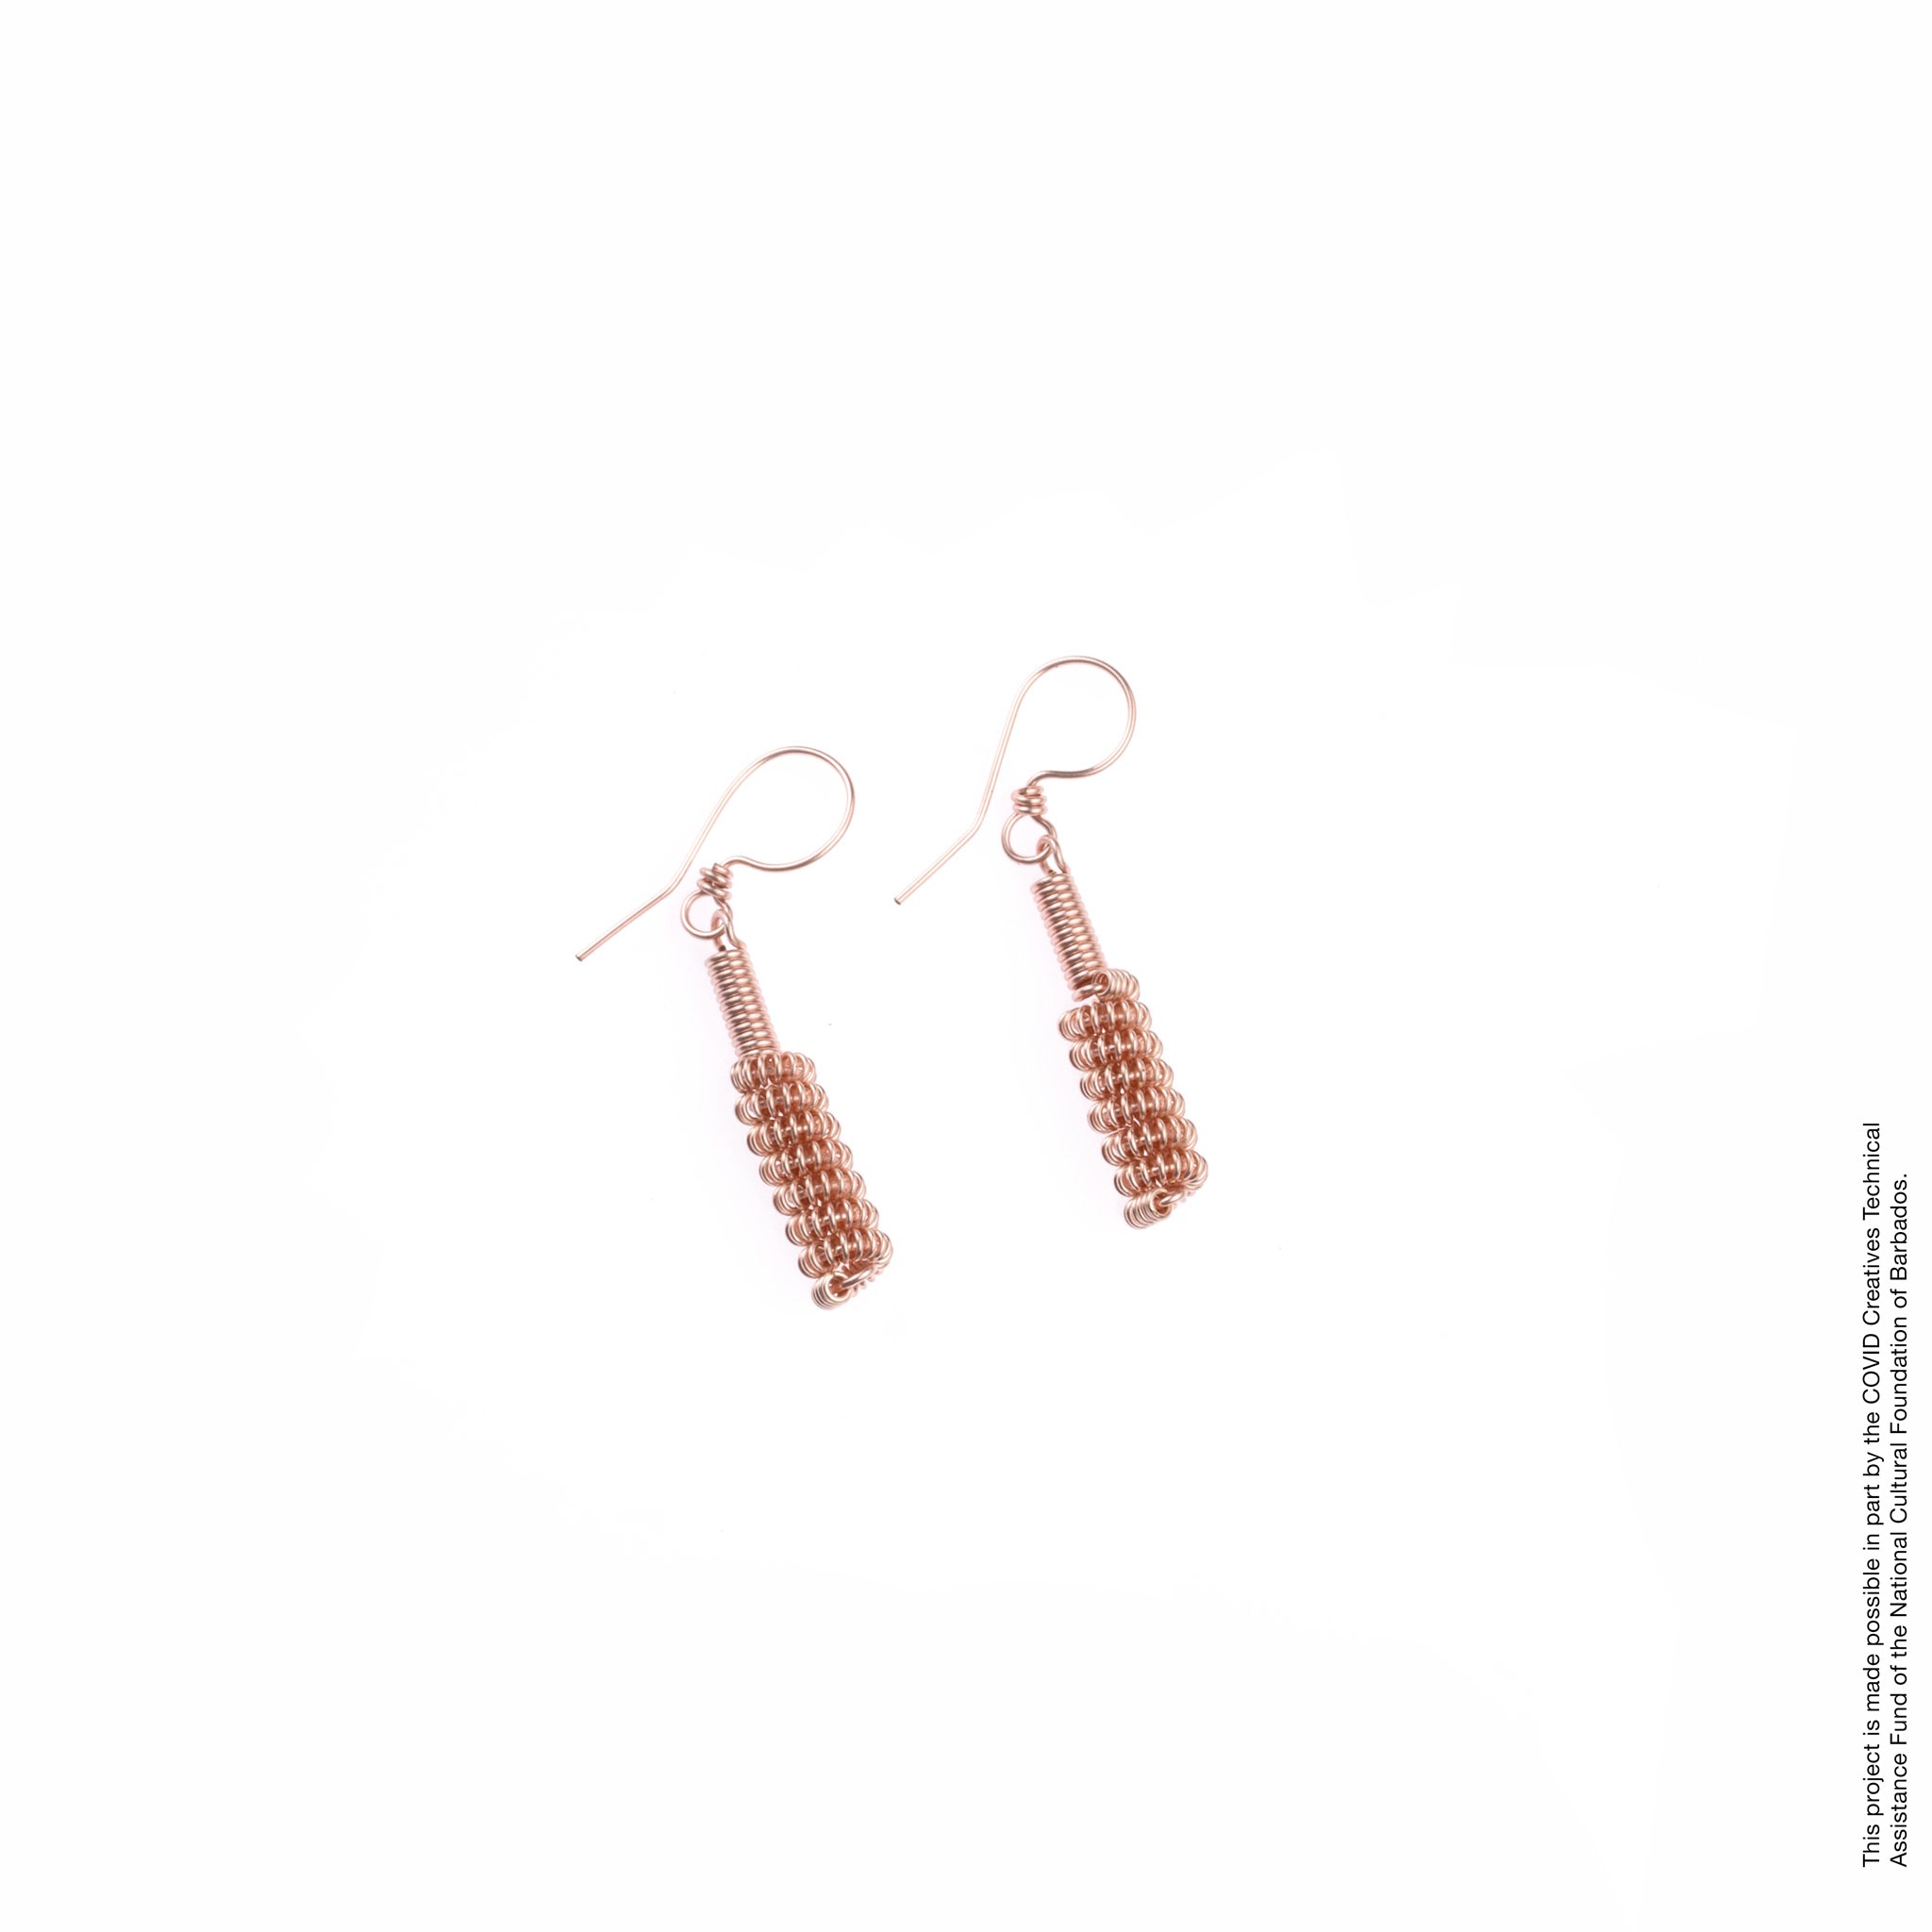 Copper Coiled Earrings Angelique Jewelry Barbados